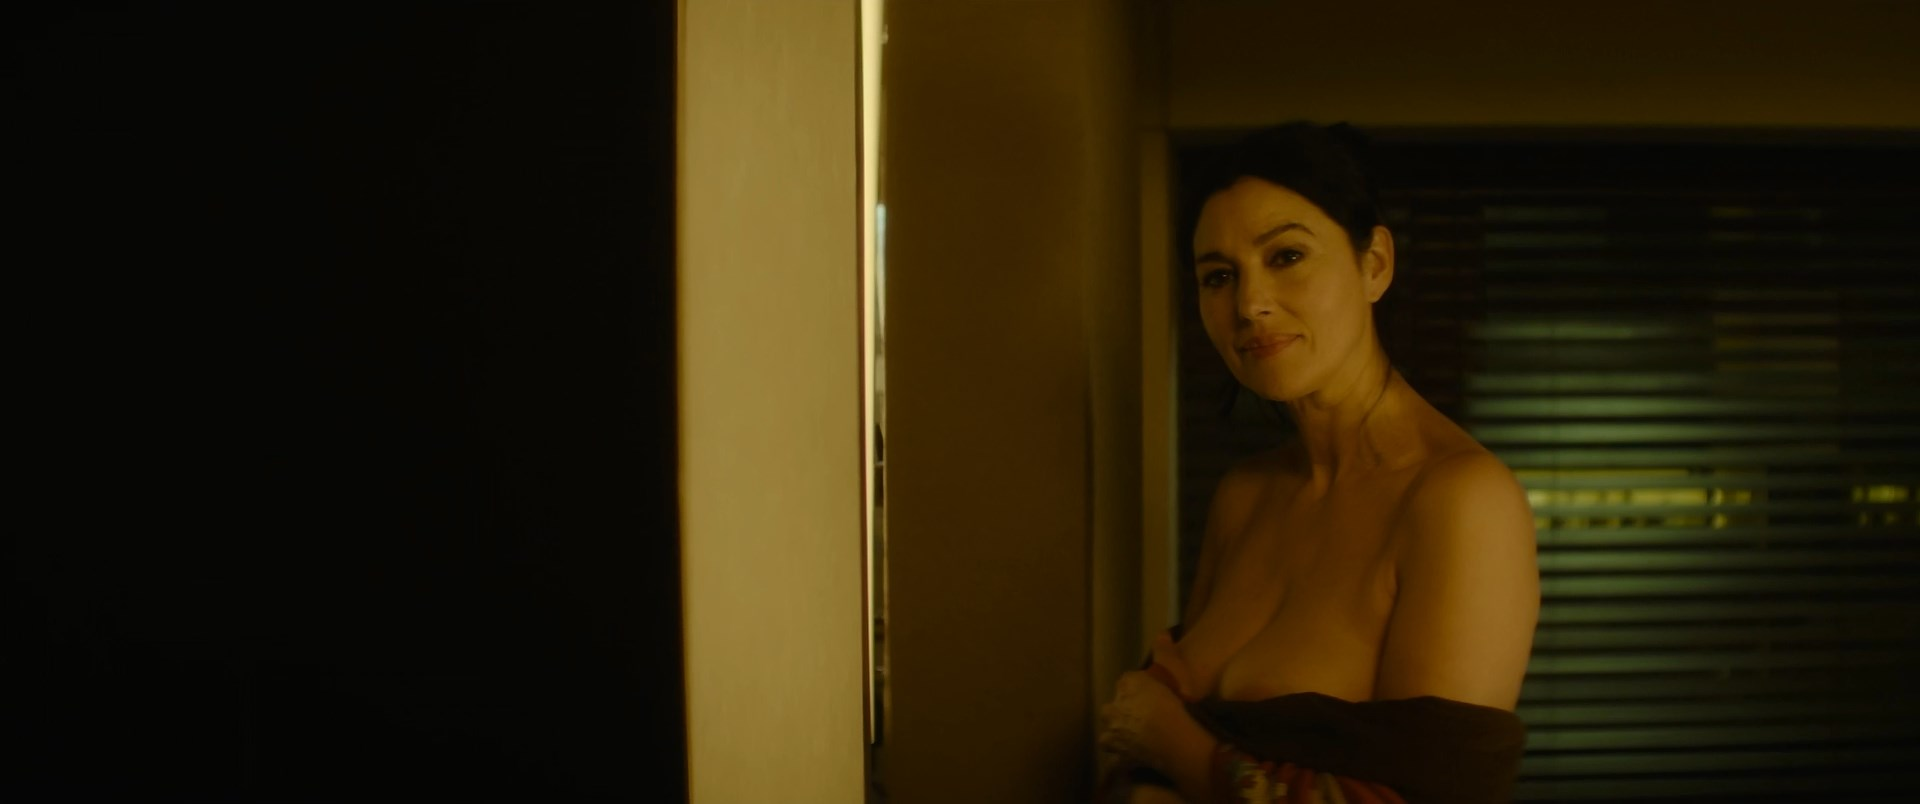 Monica Bellucci sexy - Spider in the Web (2019)